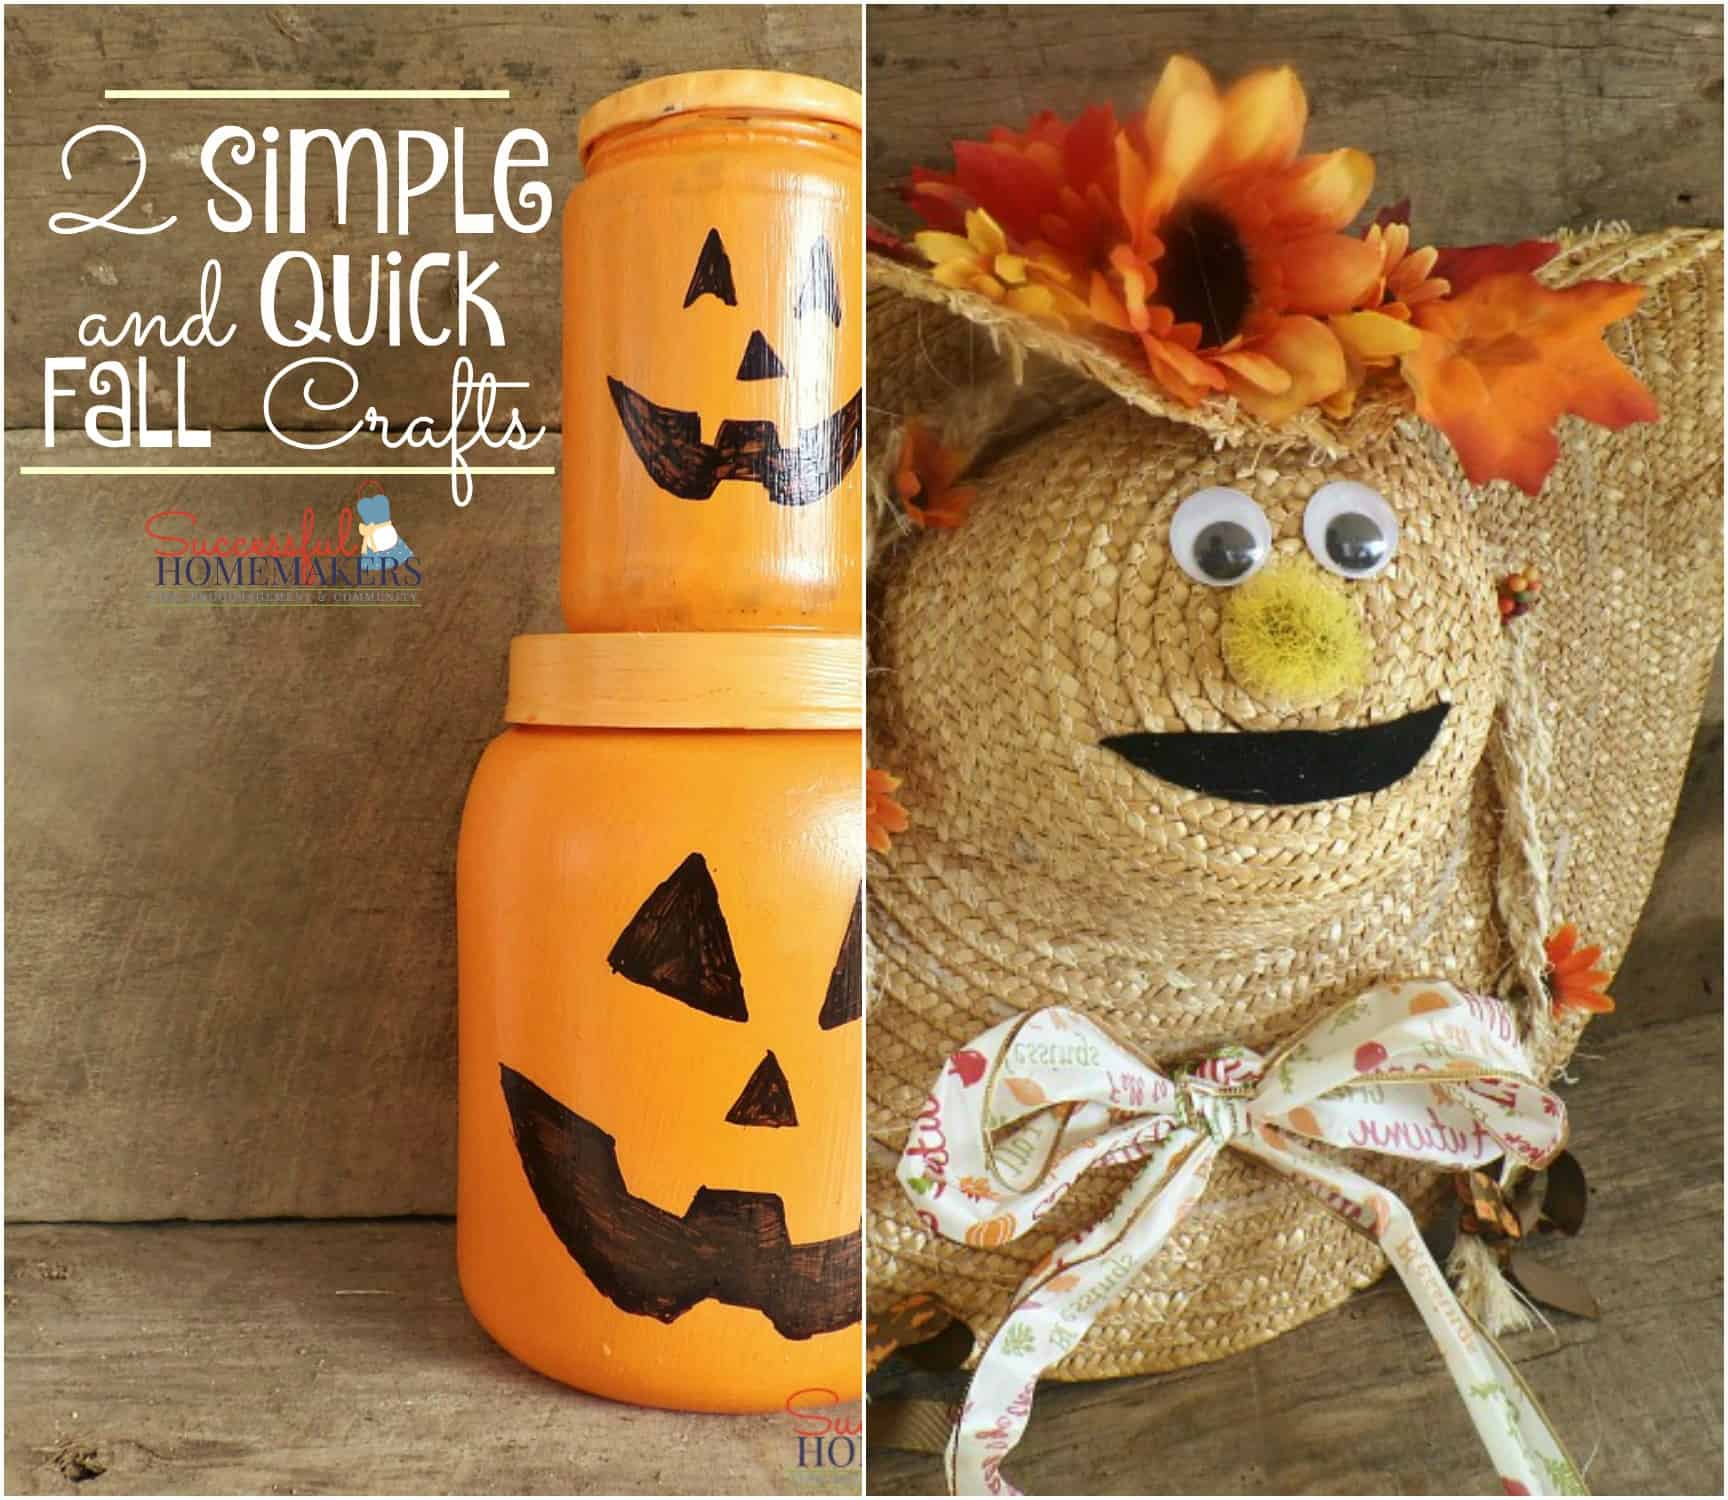 quick craft ideas 2 simple and fall crafts 2799